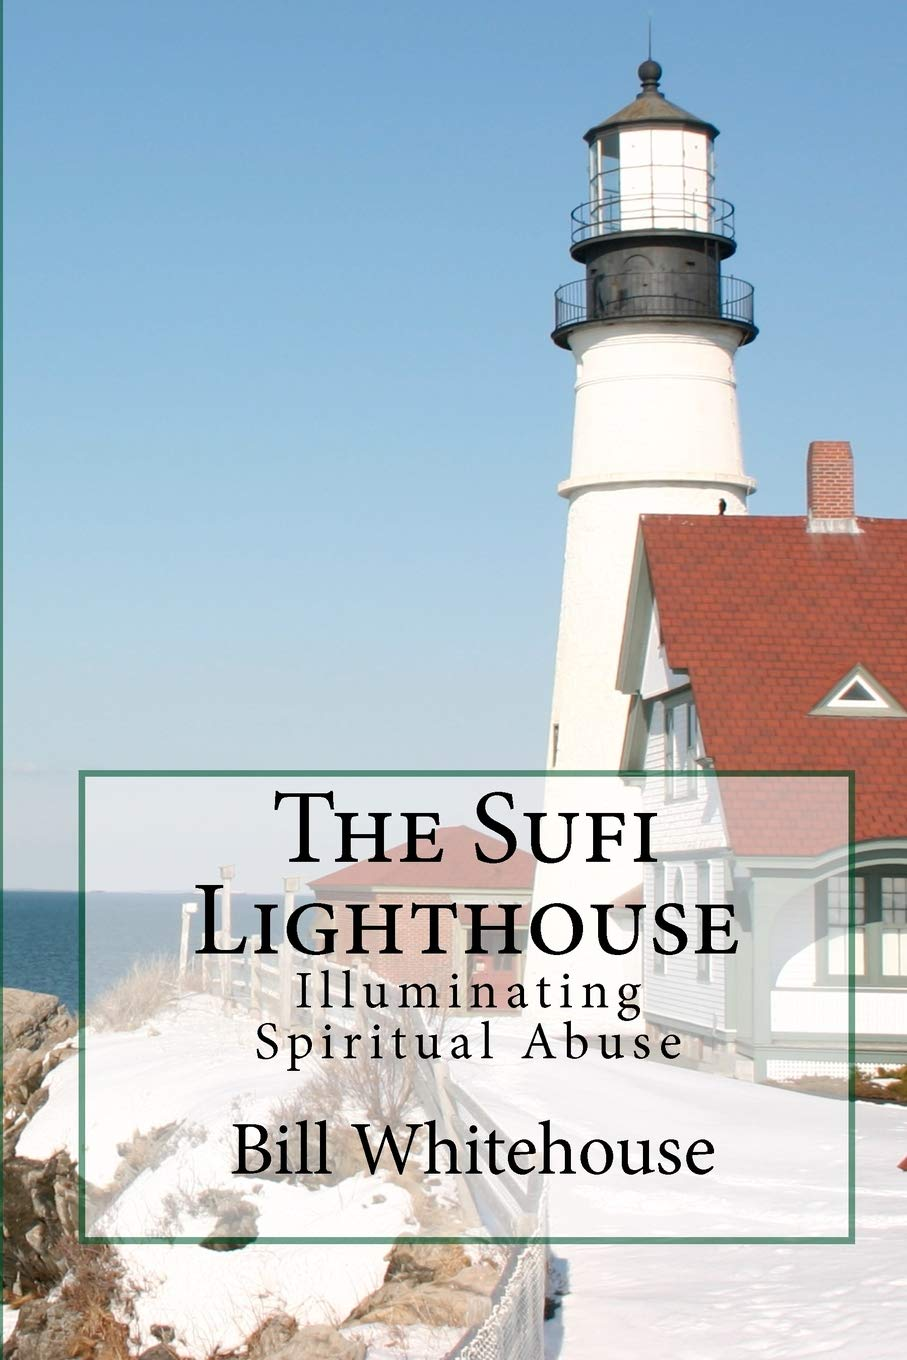 The Sufi Lighthouse: Illuminating Spiritual Abuse